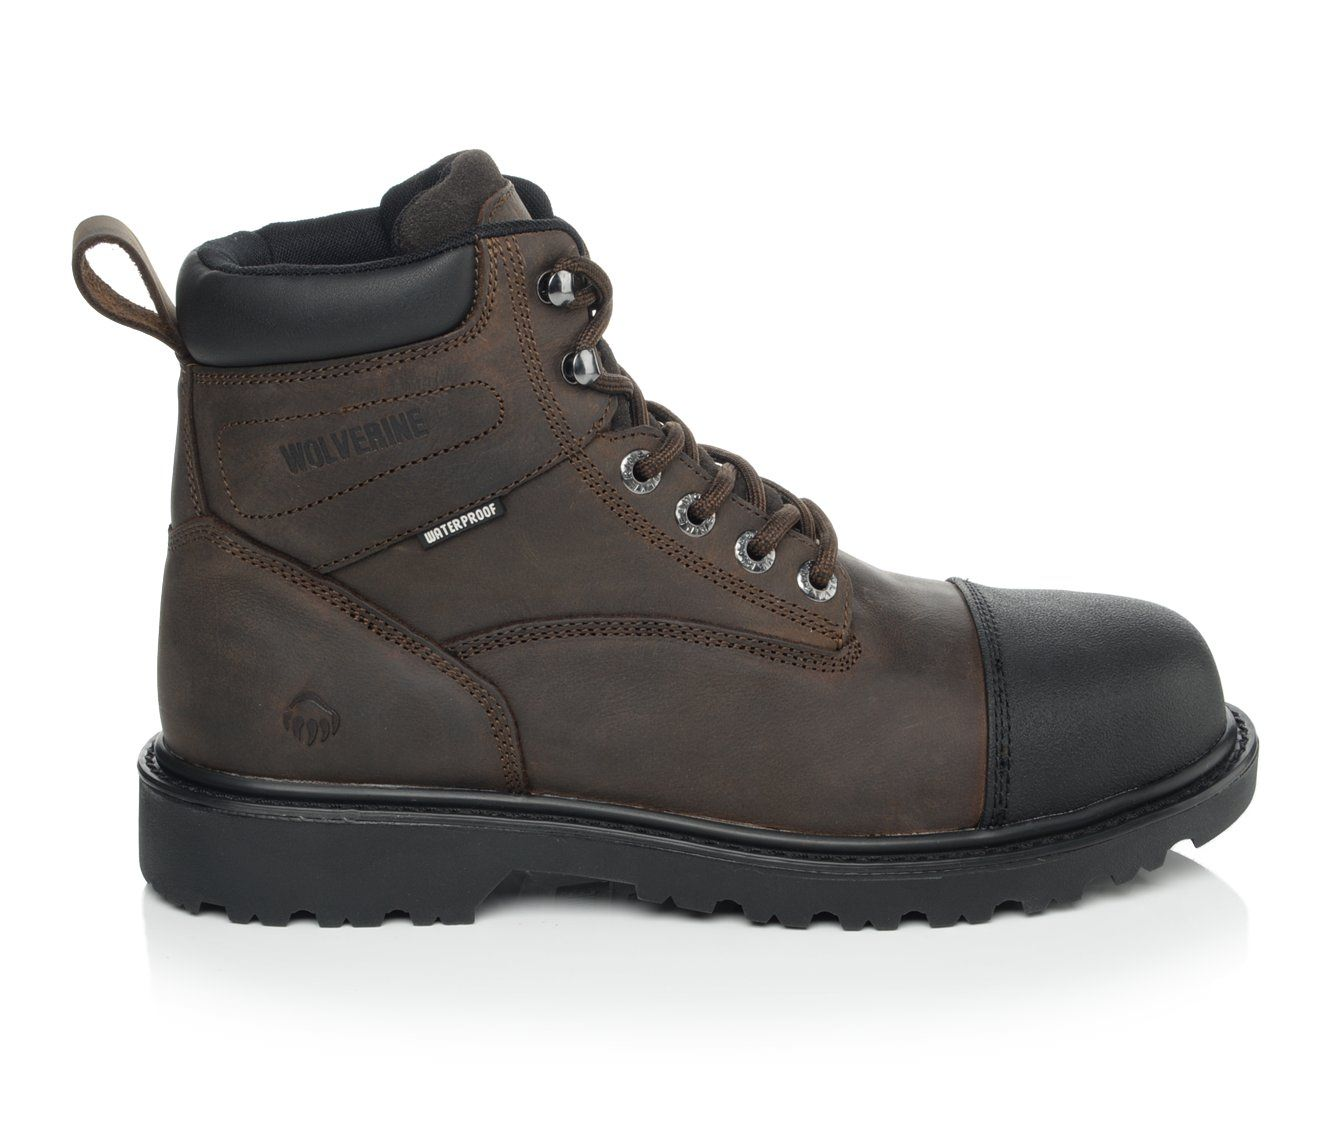 Wolverine Rig Steel Toe Men's Boots (Brown Leather)